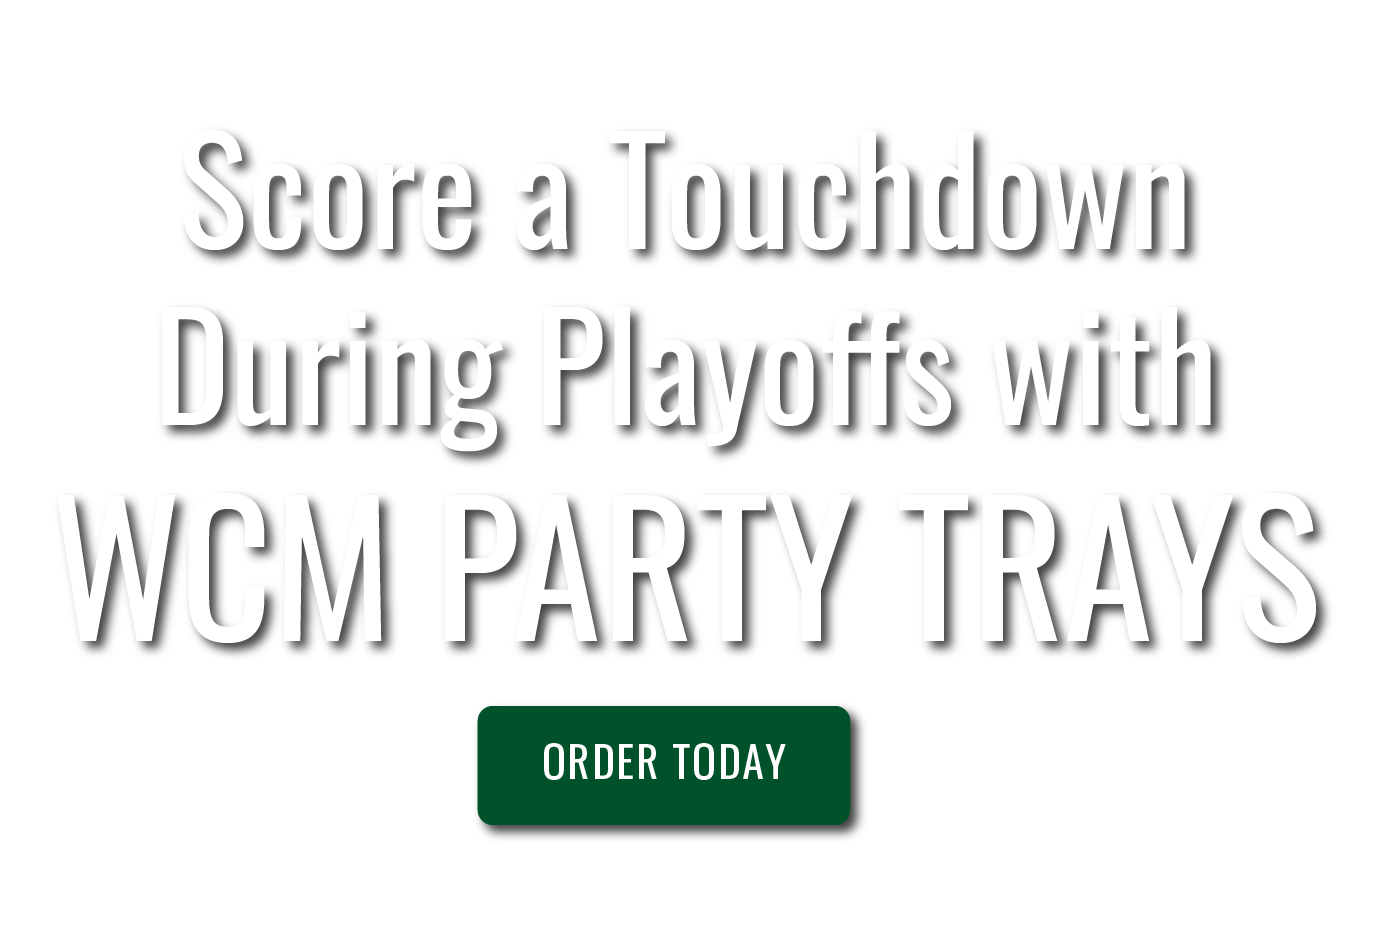 Score a touchdown during playoffs with WCM Party Trays. Order Today.